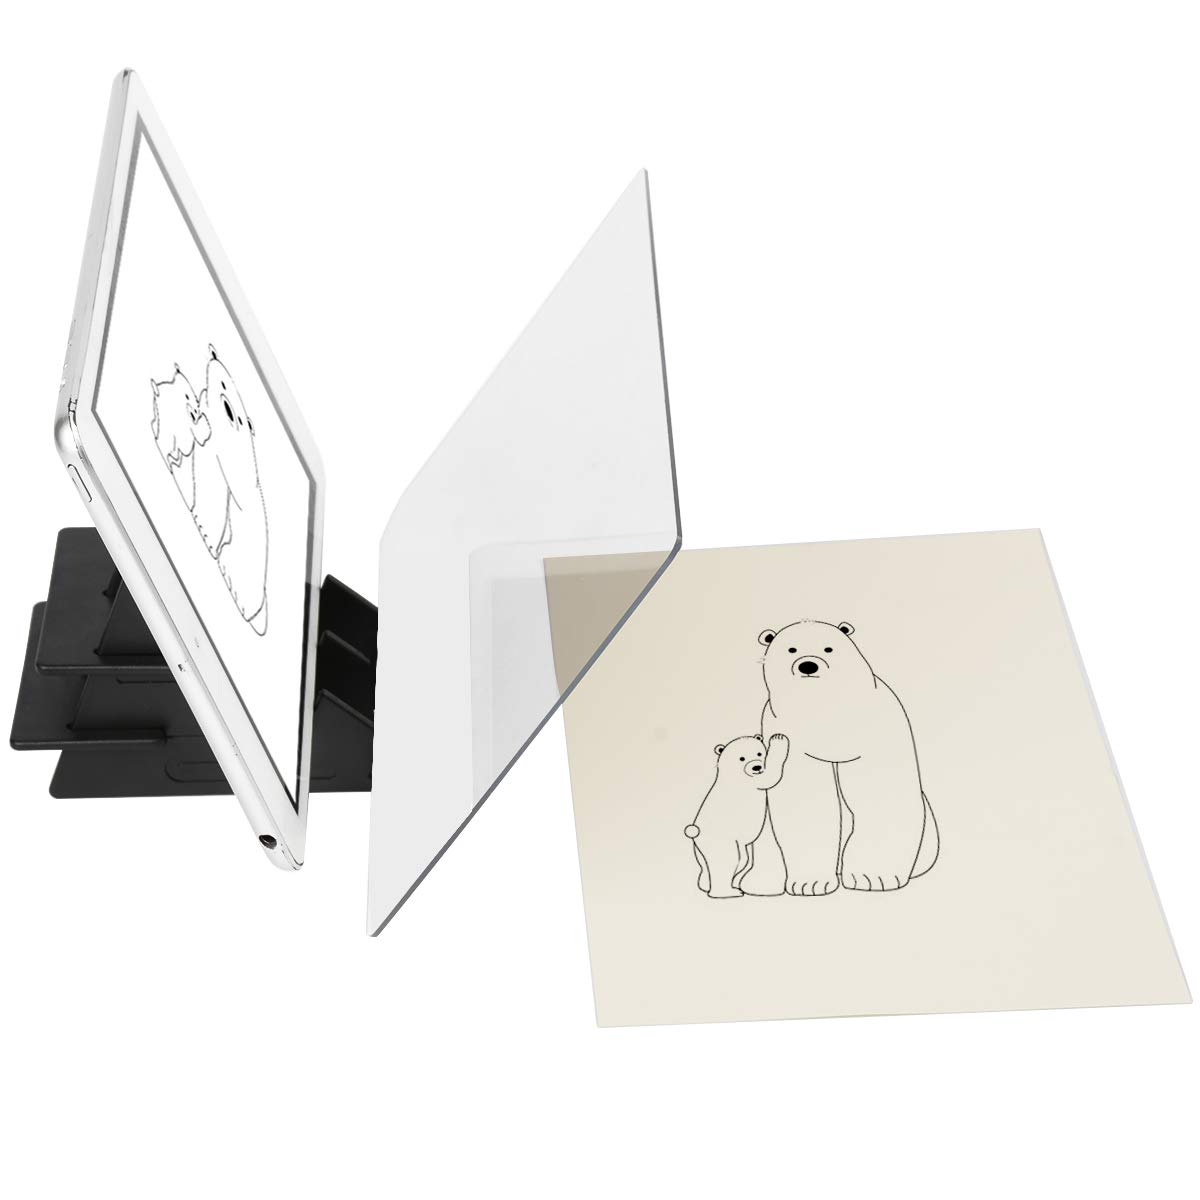 Yuntec Optical Drawing Board, Sketch Wizard, Easy Tracing Drawing, Sketching Tool, Sketch Drawing Board, Optical Picture Book, Painting Artifact Sketching kit for Kids